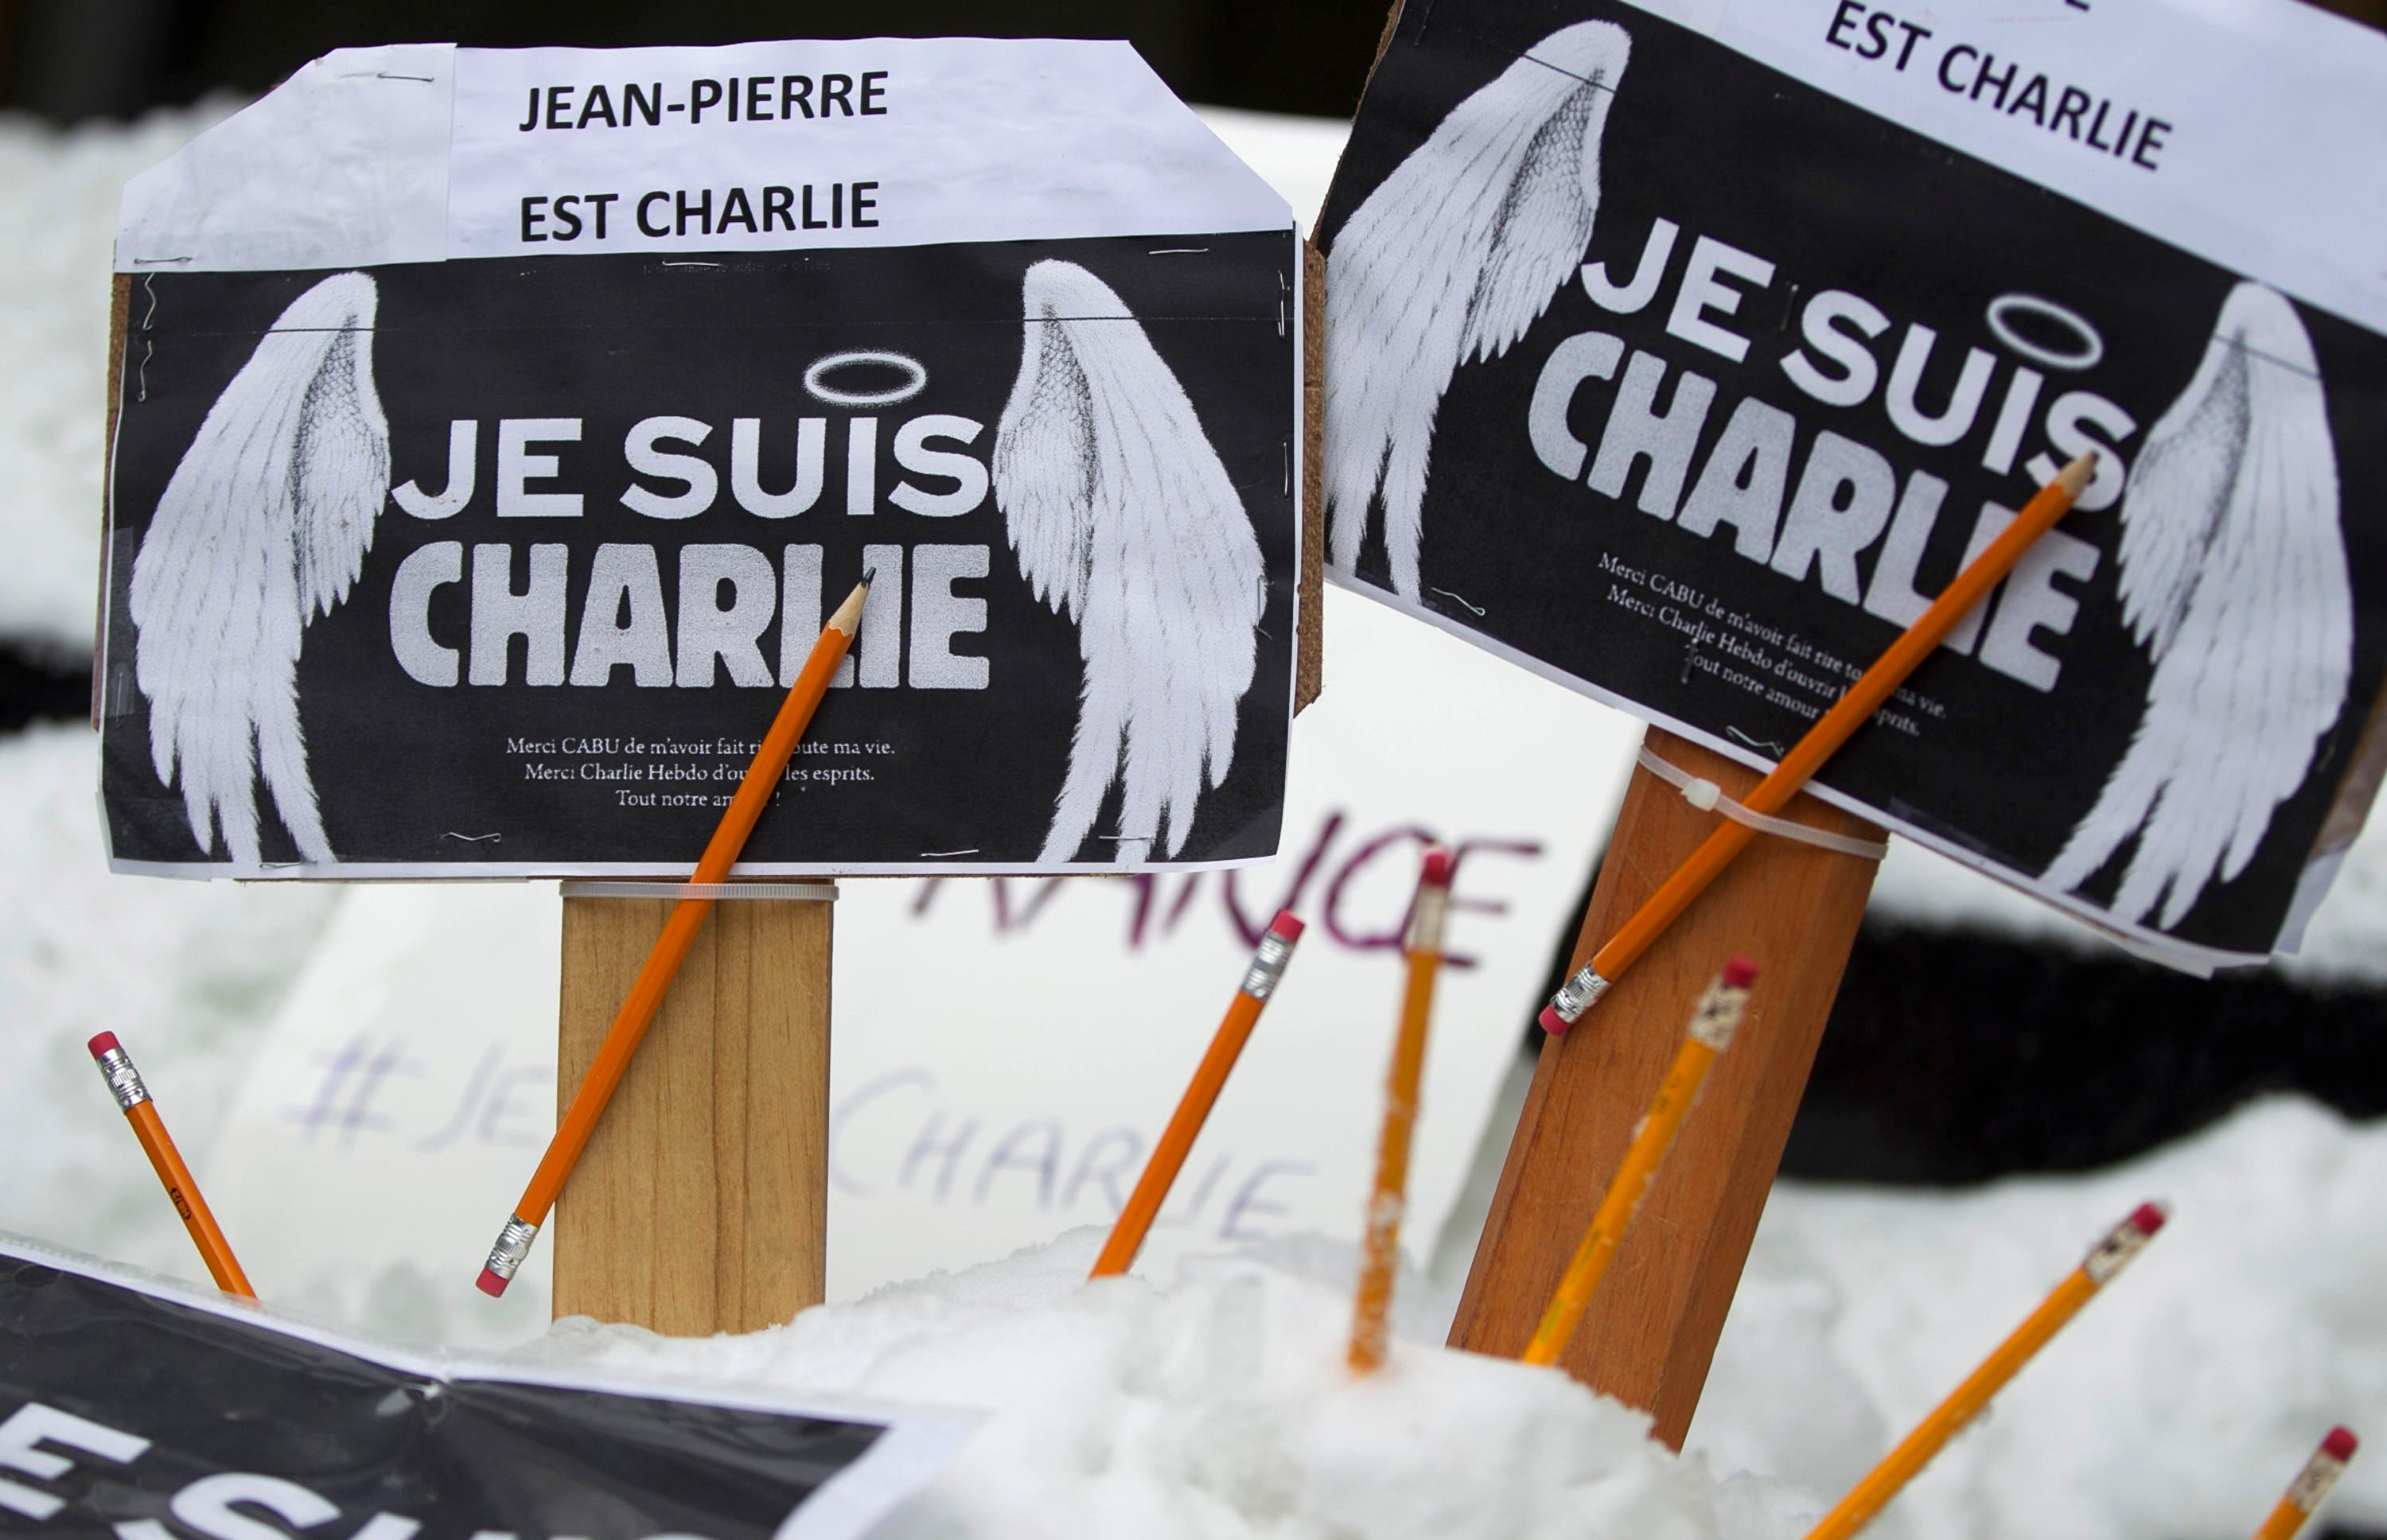 The world comes to Paris in unity rally